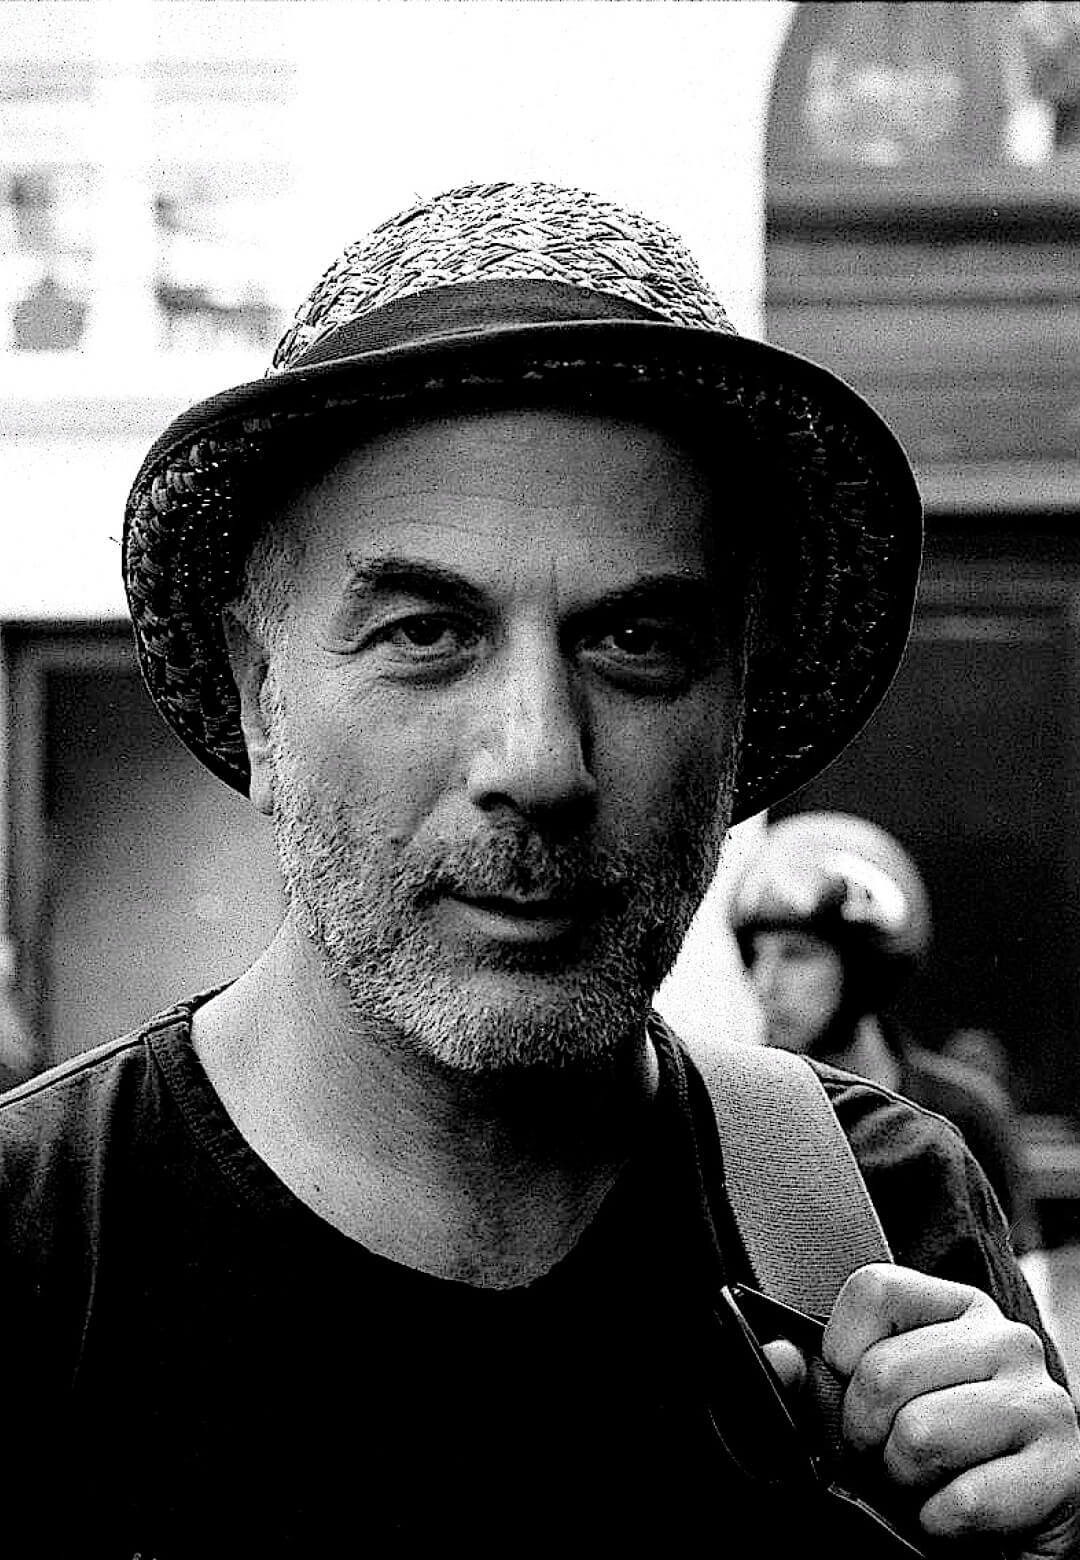 Ron Arad - an artist by birth, an architect by profession, a designer by accident | Luminaries of our Times | STIRworld